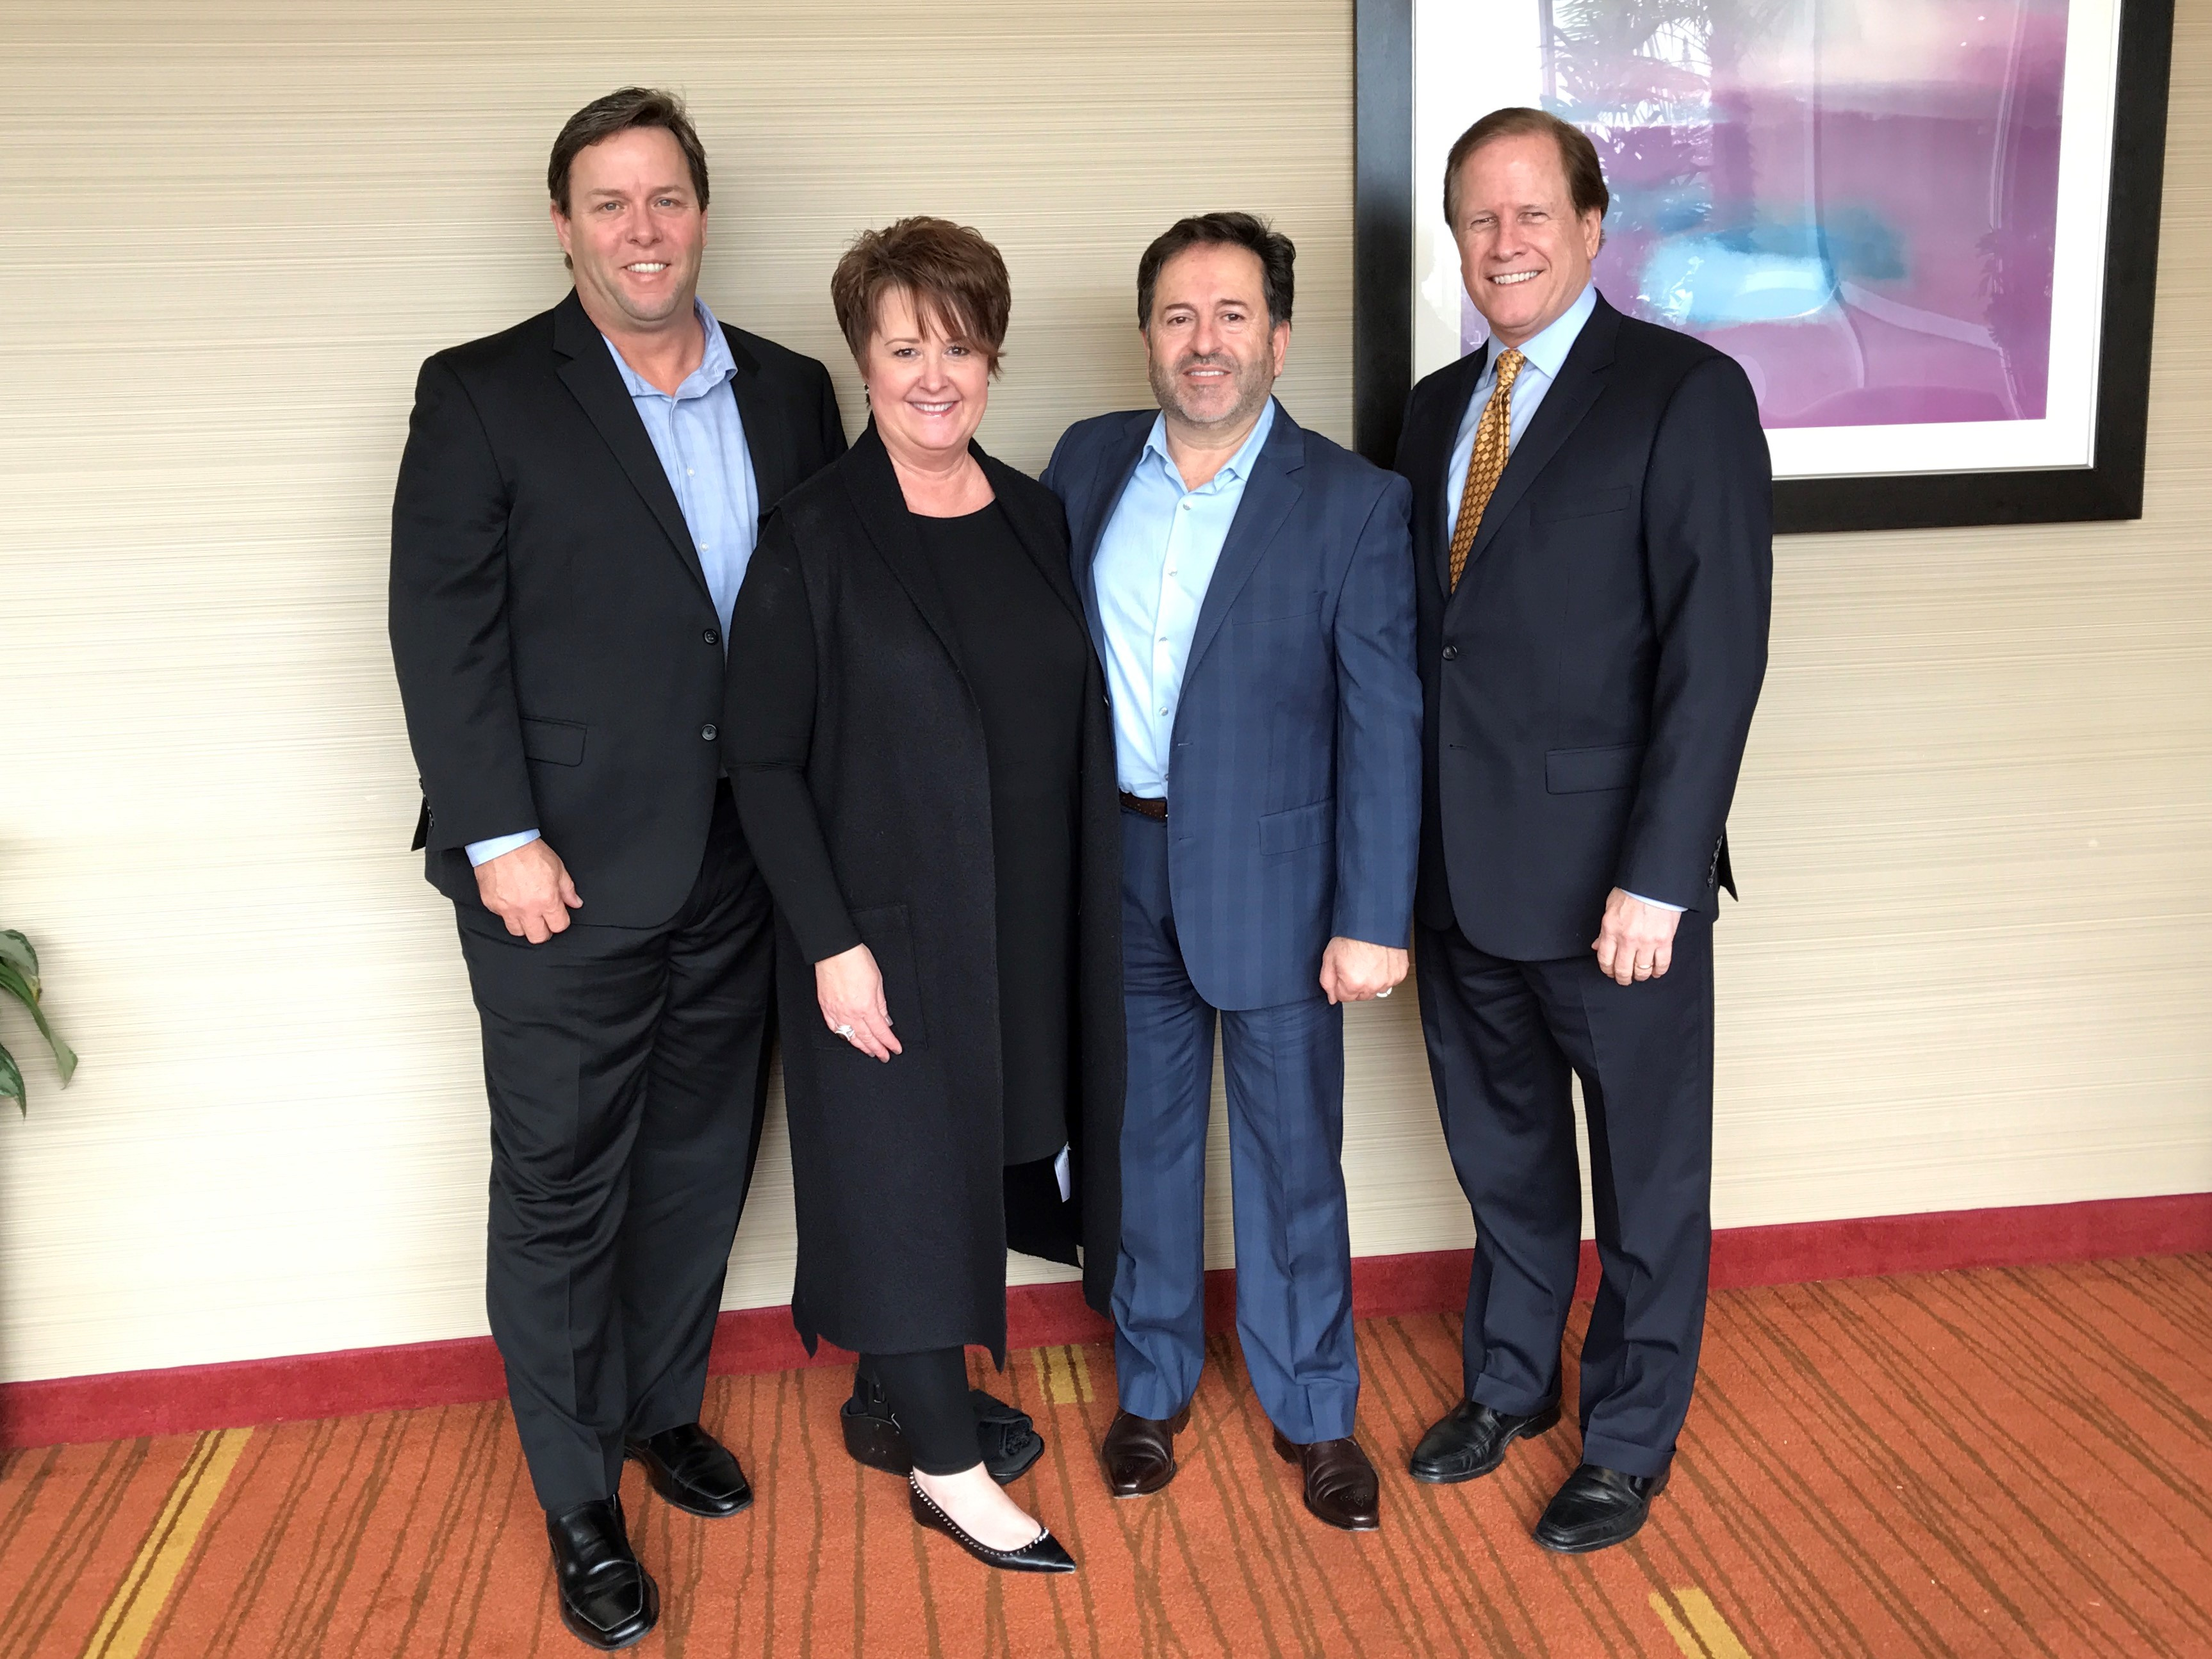 Thomas Clarke, Vice President of Operations, Kymberly Helser, Vice President of Sales, Karl Sweis, President Sweis Inc. and Glen Pacek, Executive Vice President of Sales.